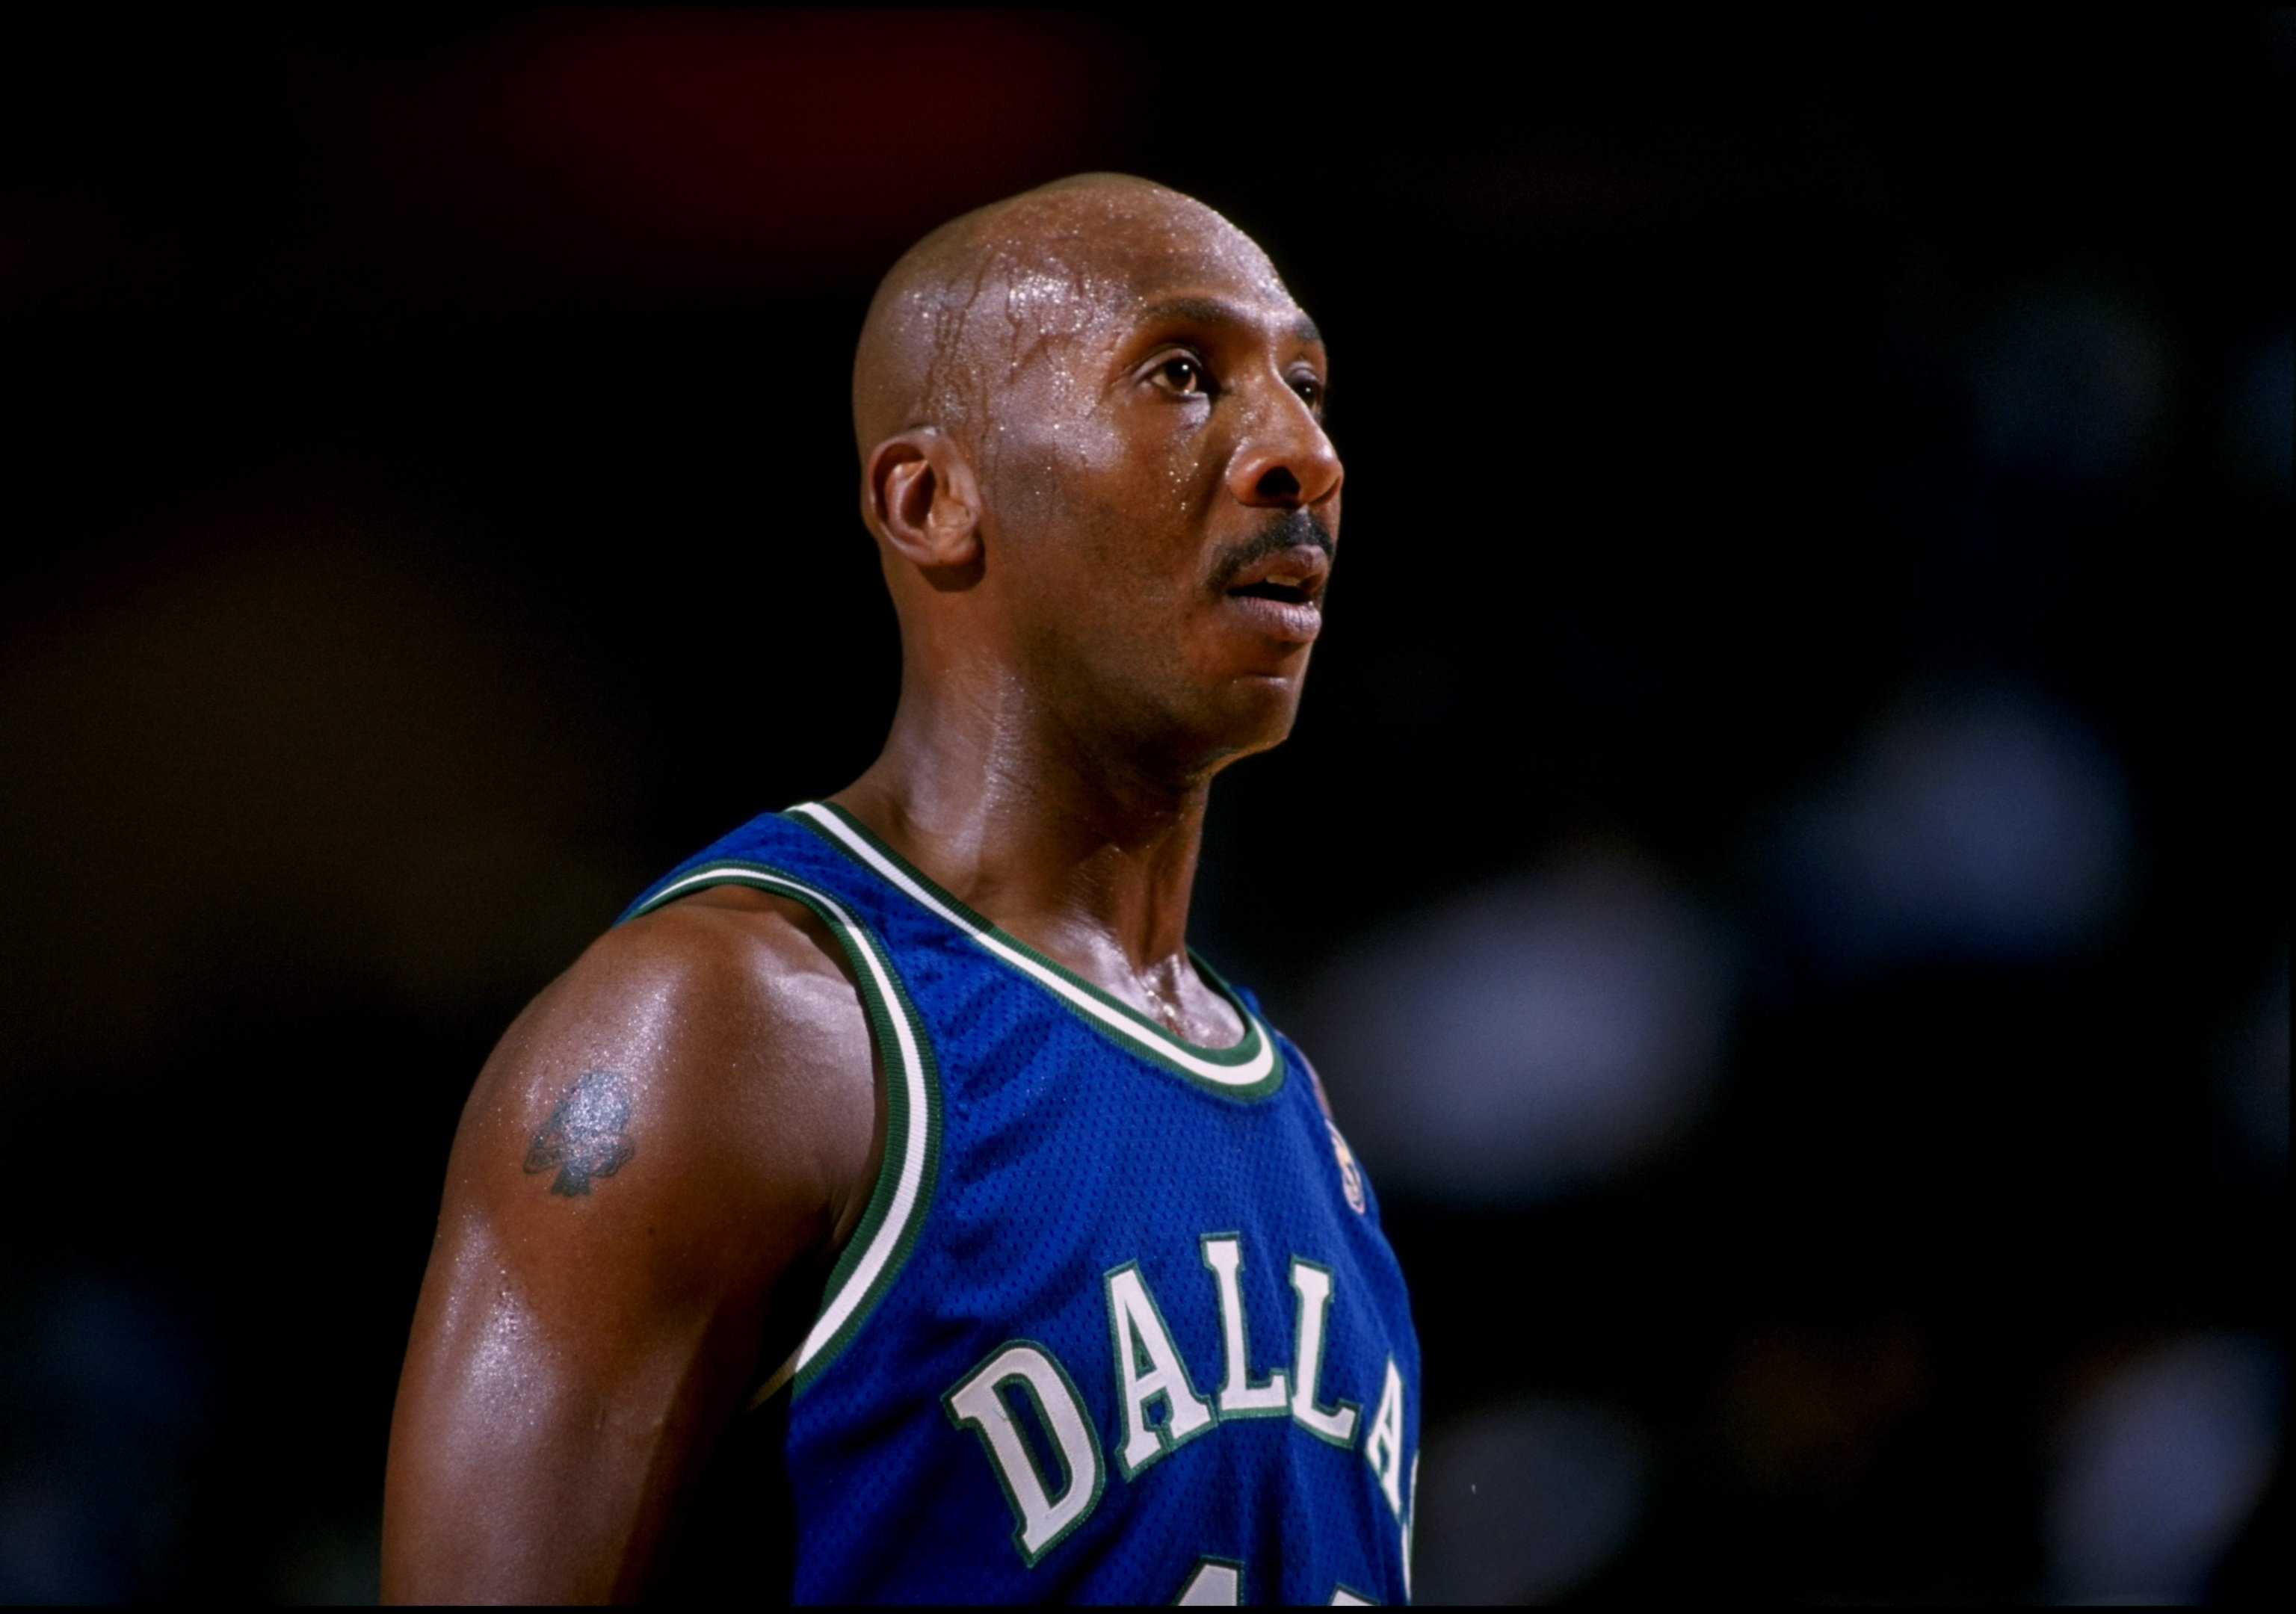 16 Oct 1996: Guard Derek Harper of the Dallas Mavericks in action against the Los Angeles Lakers during a game at the Selland Arena in Fresno, California. The Lakers defeated the Mavericks 90-80.